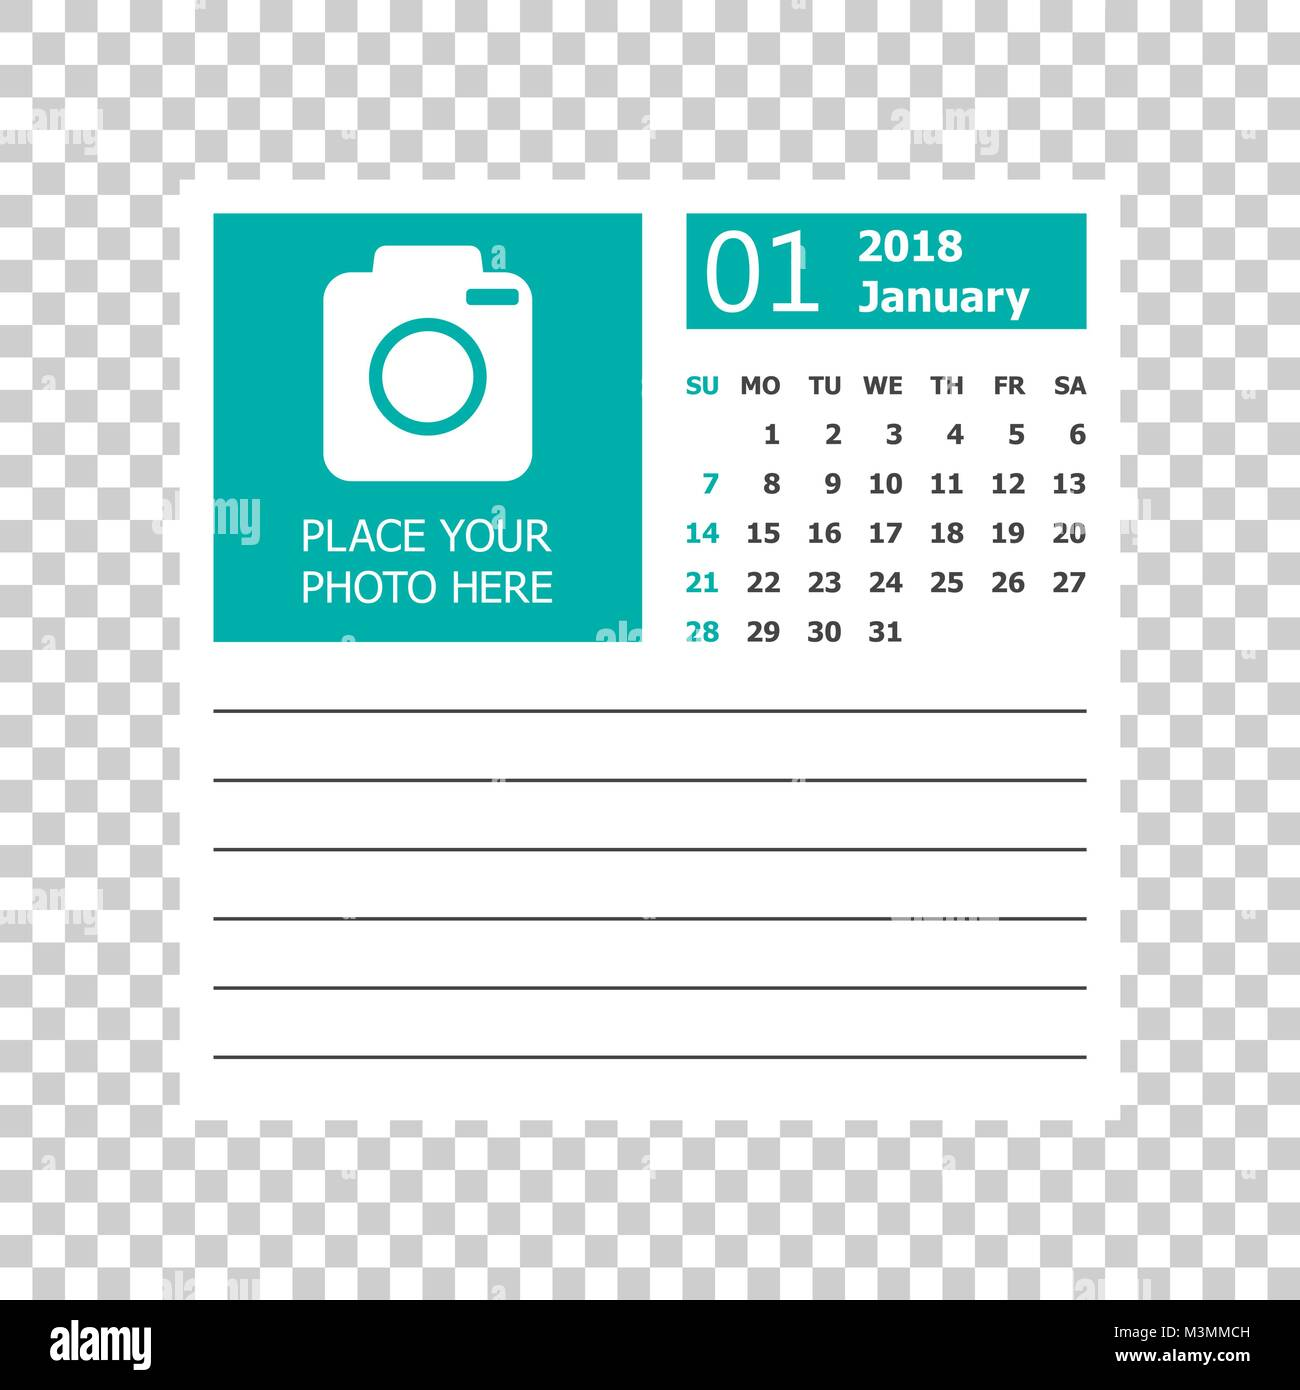 january 2018 calendar calendar planner design template week starts